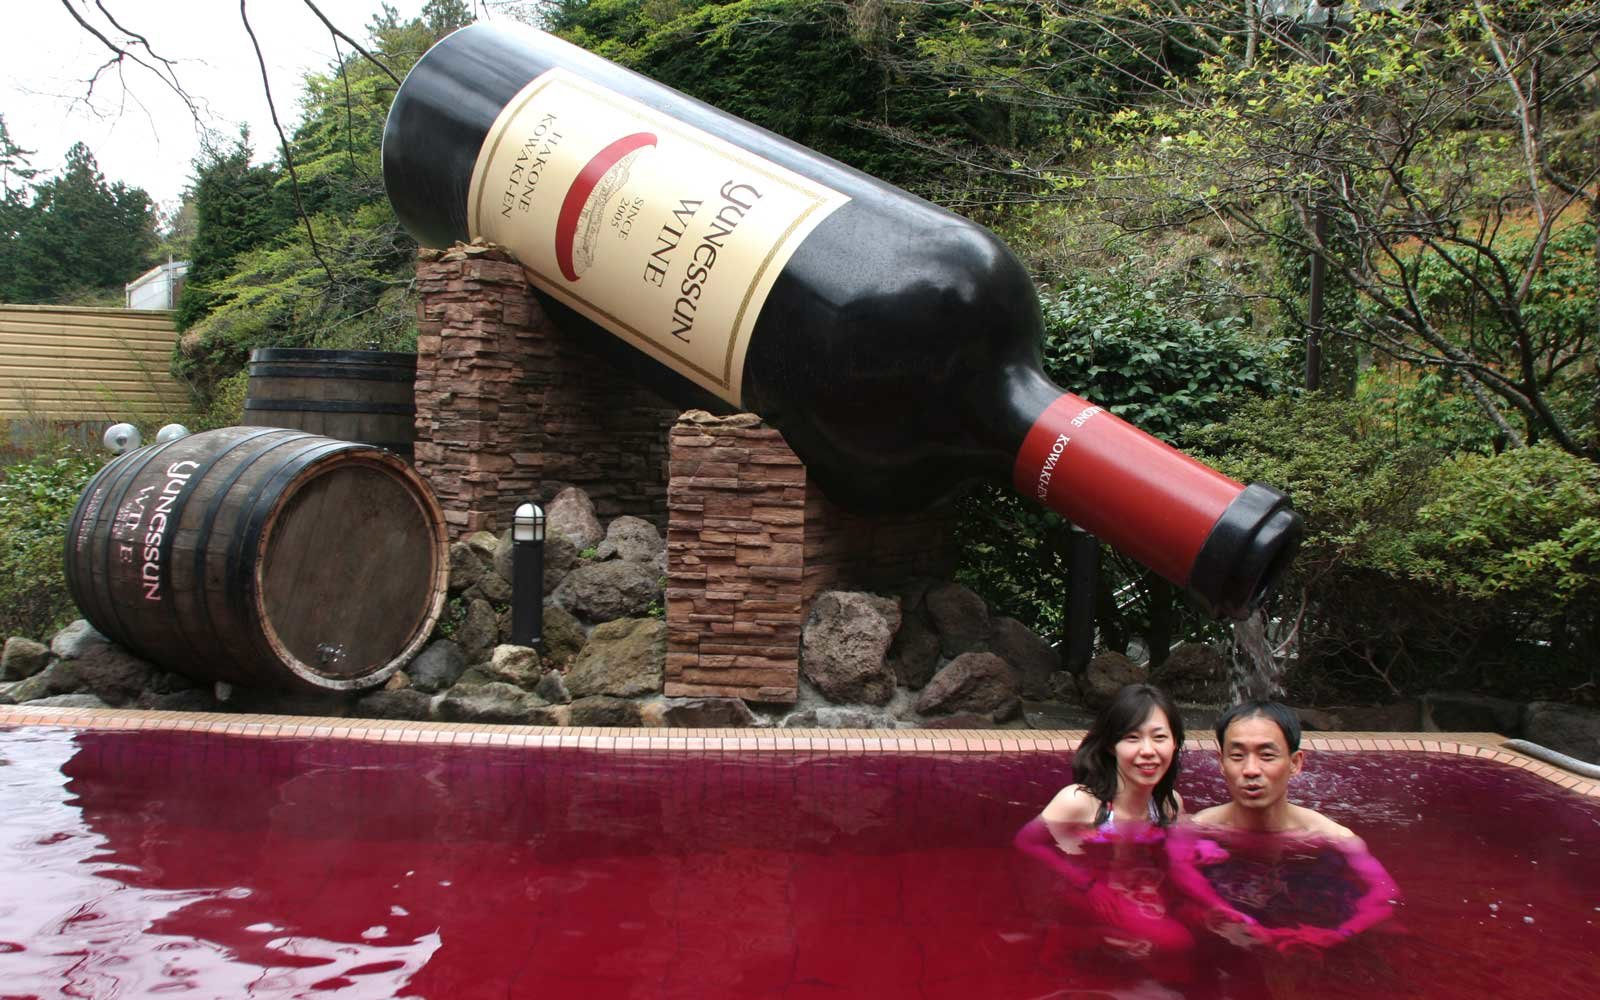 A couple bathe in the red wine bath, ( a bath containing real red wine), at Hakone Kowakien Yunessun in Tokyo, Japan